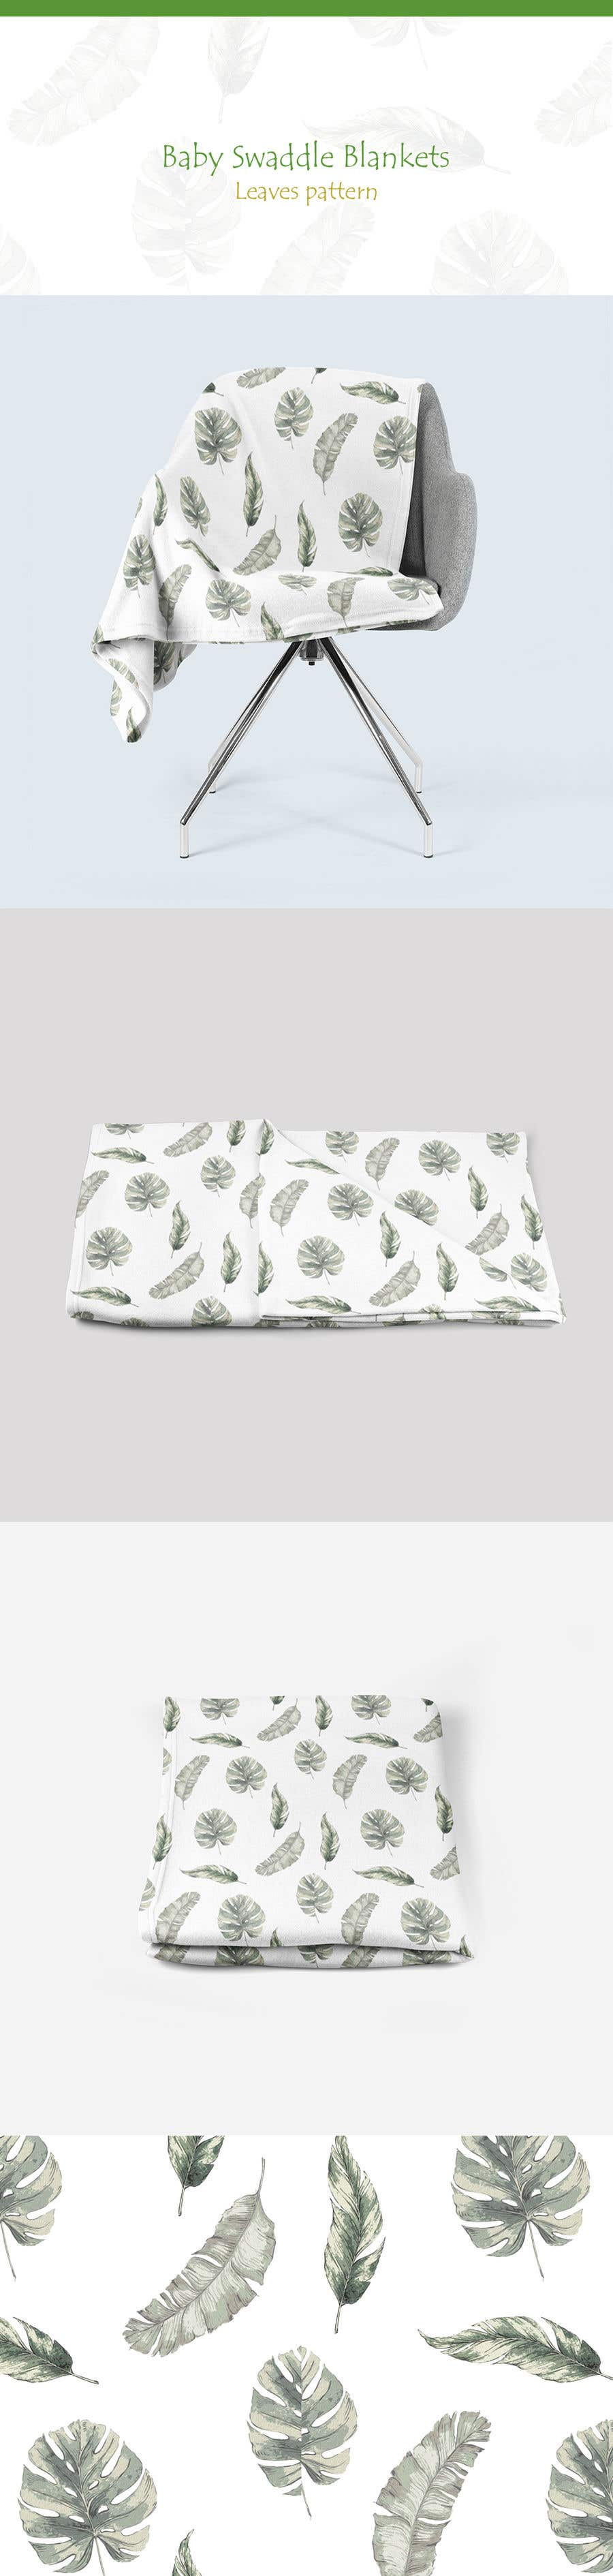 Proposition n°131 du concours Design 3 Baby Swaddle Blankets